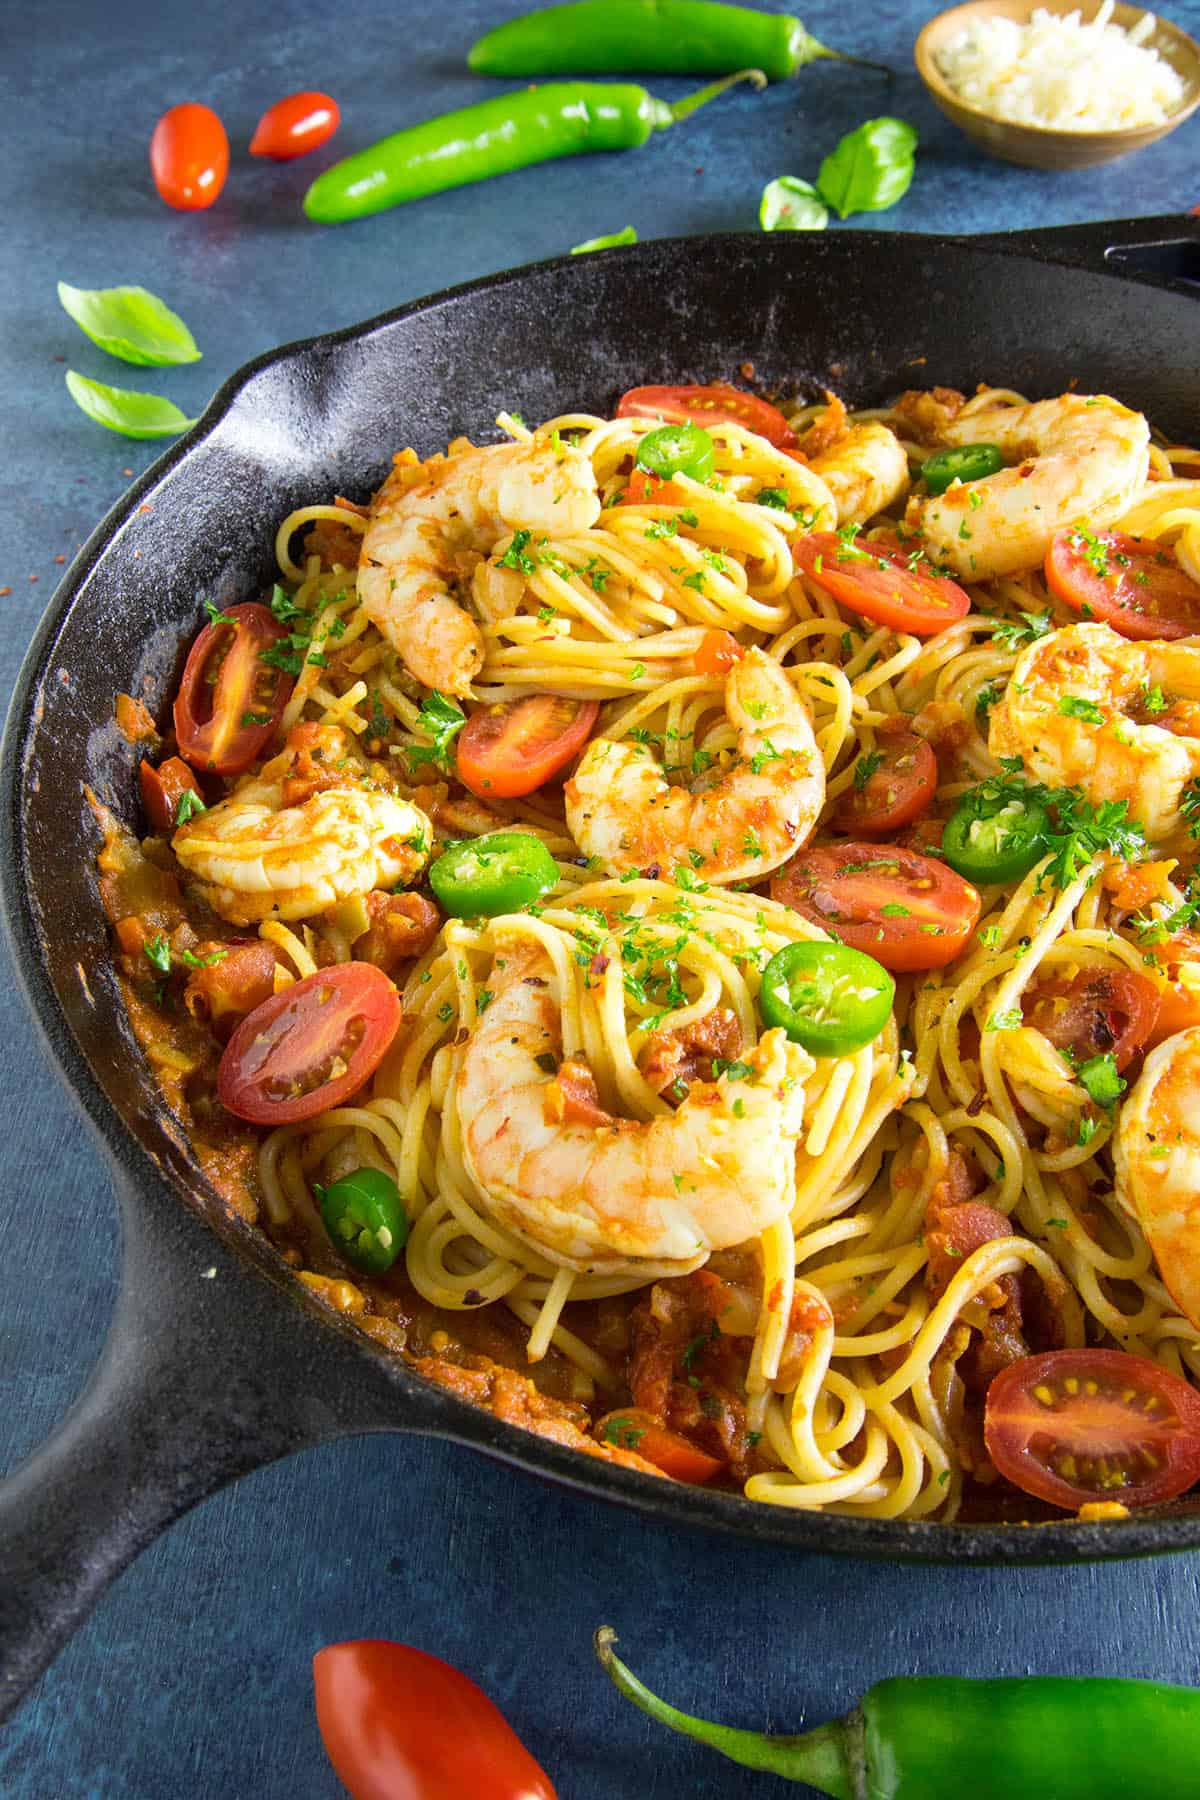 Cajun Shrimp Pasta with Red Sauce